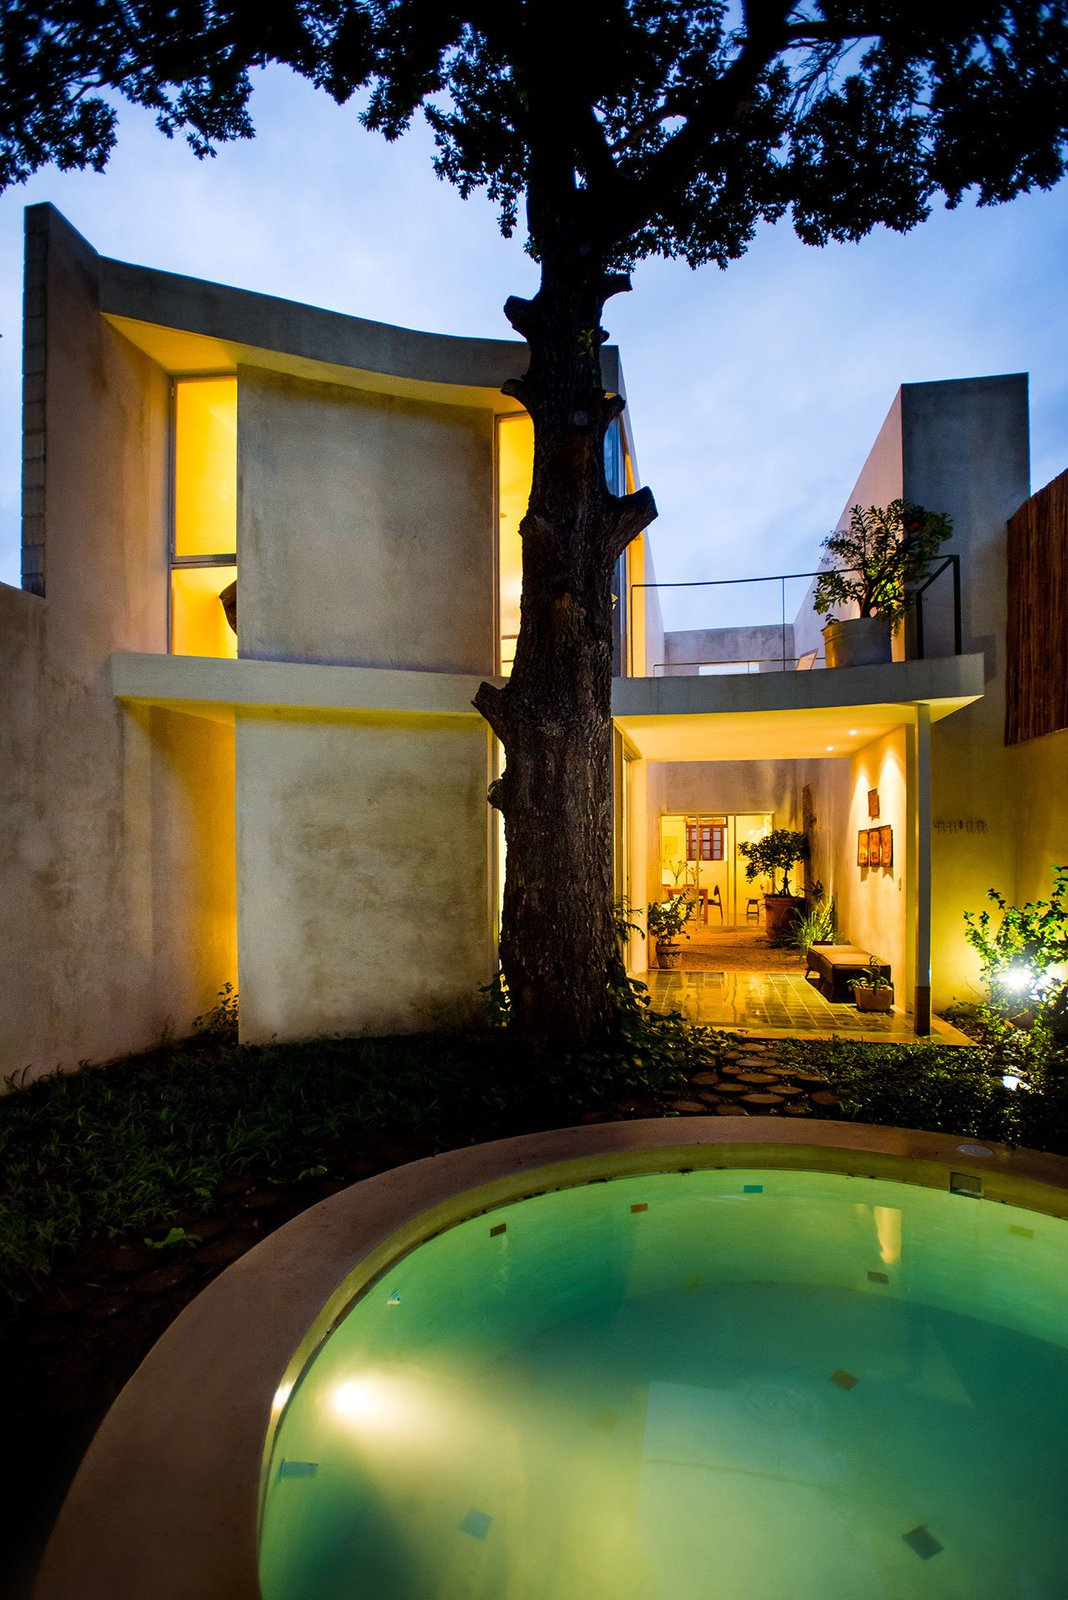 The grand and stately tree is the unchallenged star of the backyard. The round pool, made of made of white polished concrete and handcrafted cement floor tile, smartly pairs with the curved, east-side elevation of the home.  Casa Mérida by Sarah Akkoush